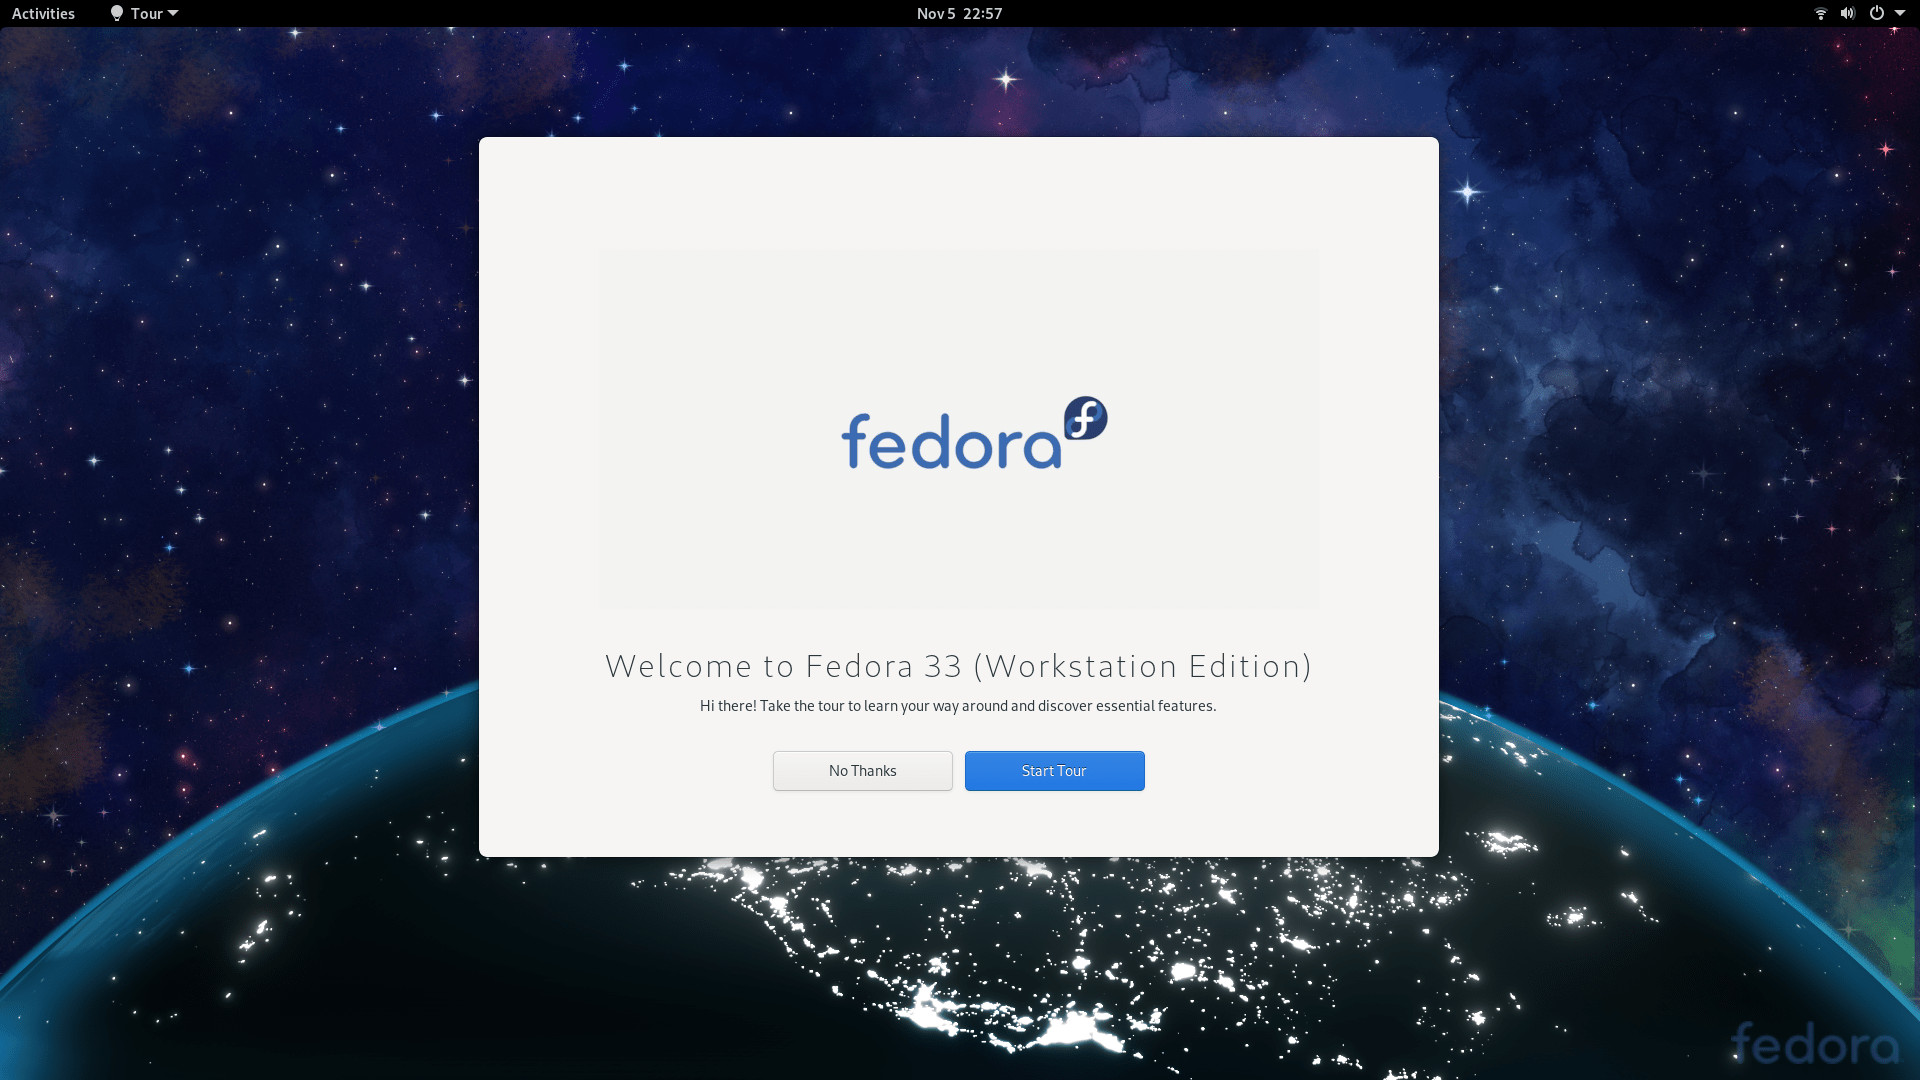 things to do after installing fedora 3 November 5, 2020